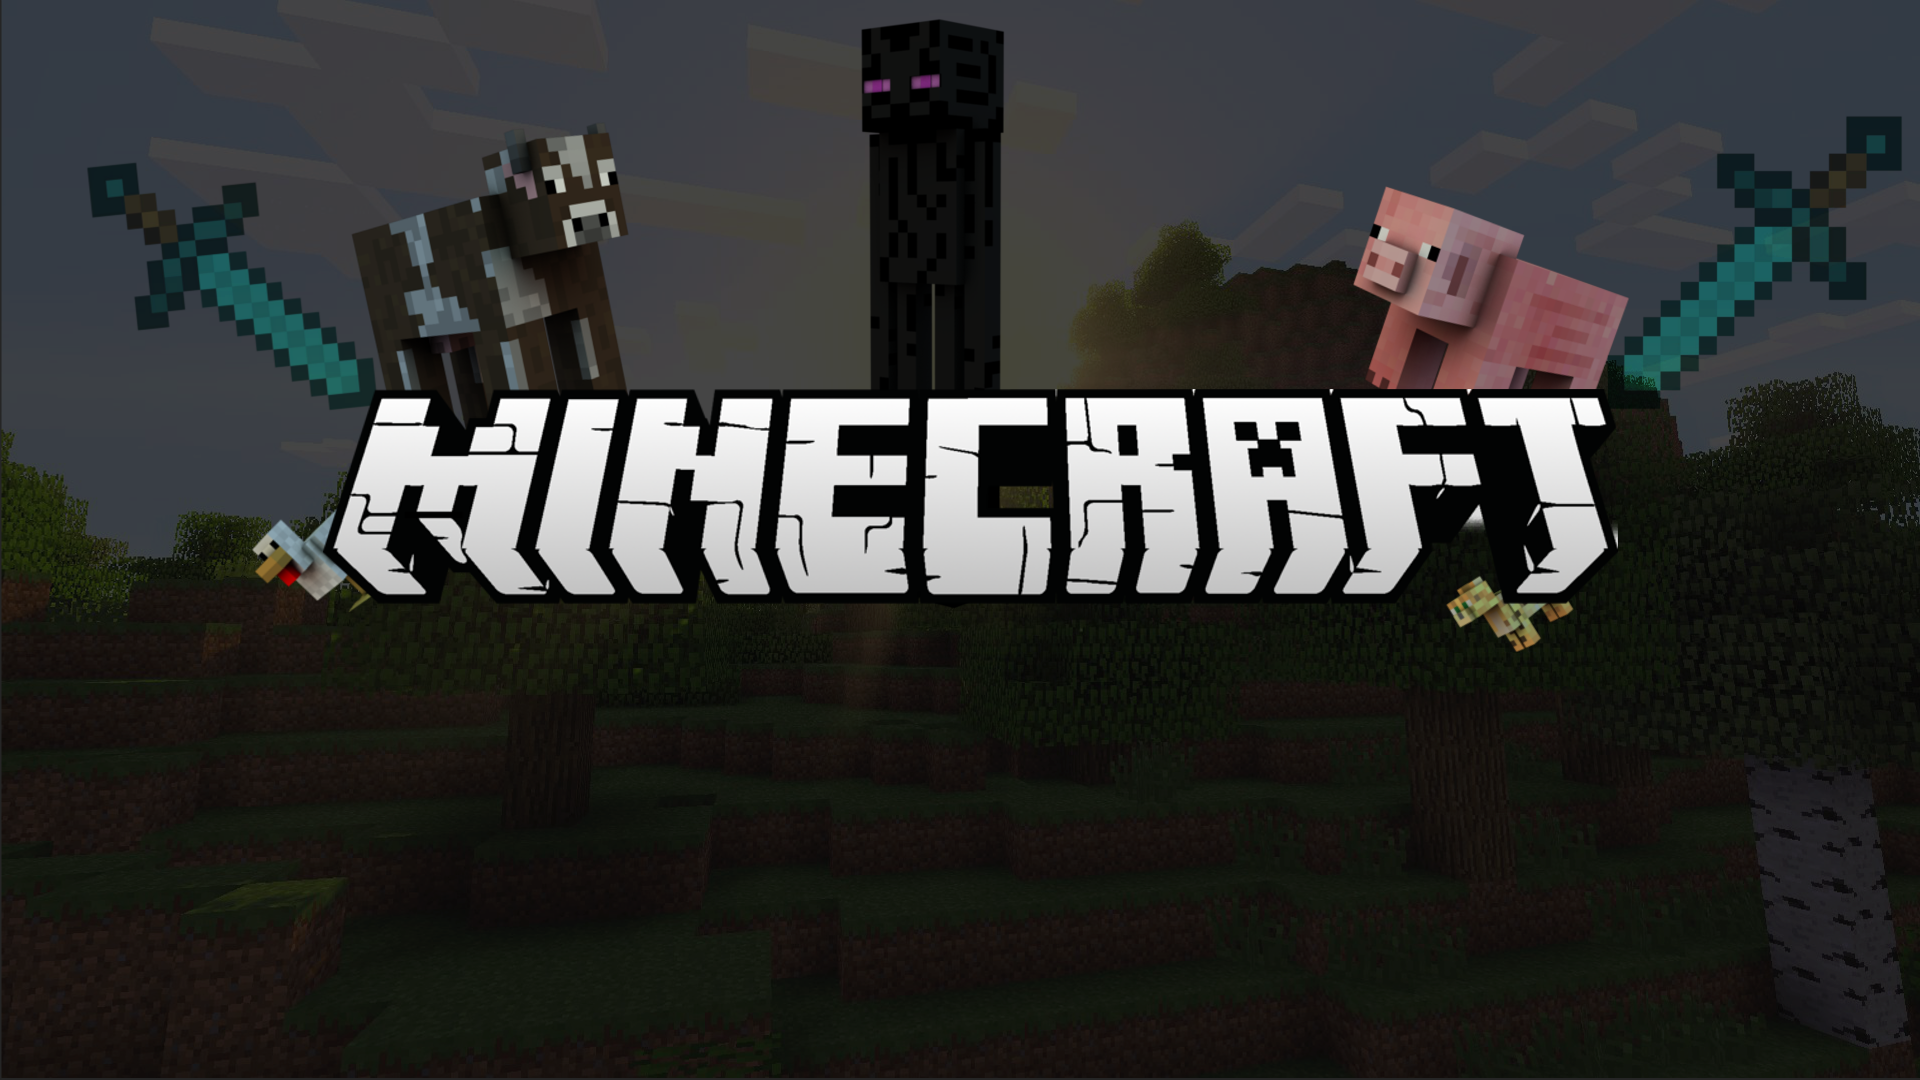 Minecraft 2048 Pixels Wide And